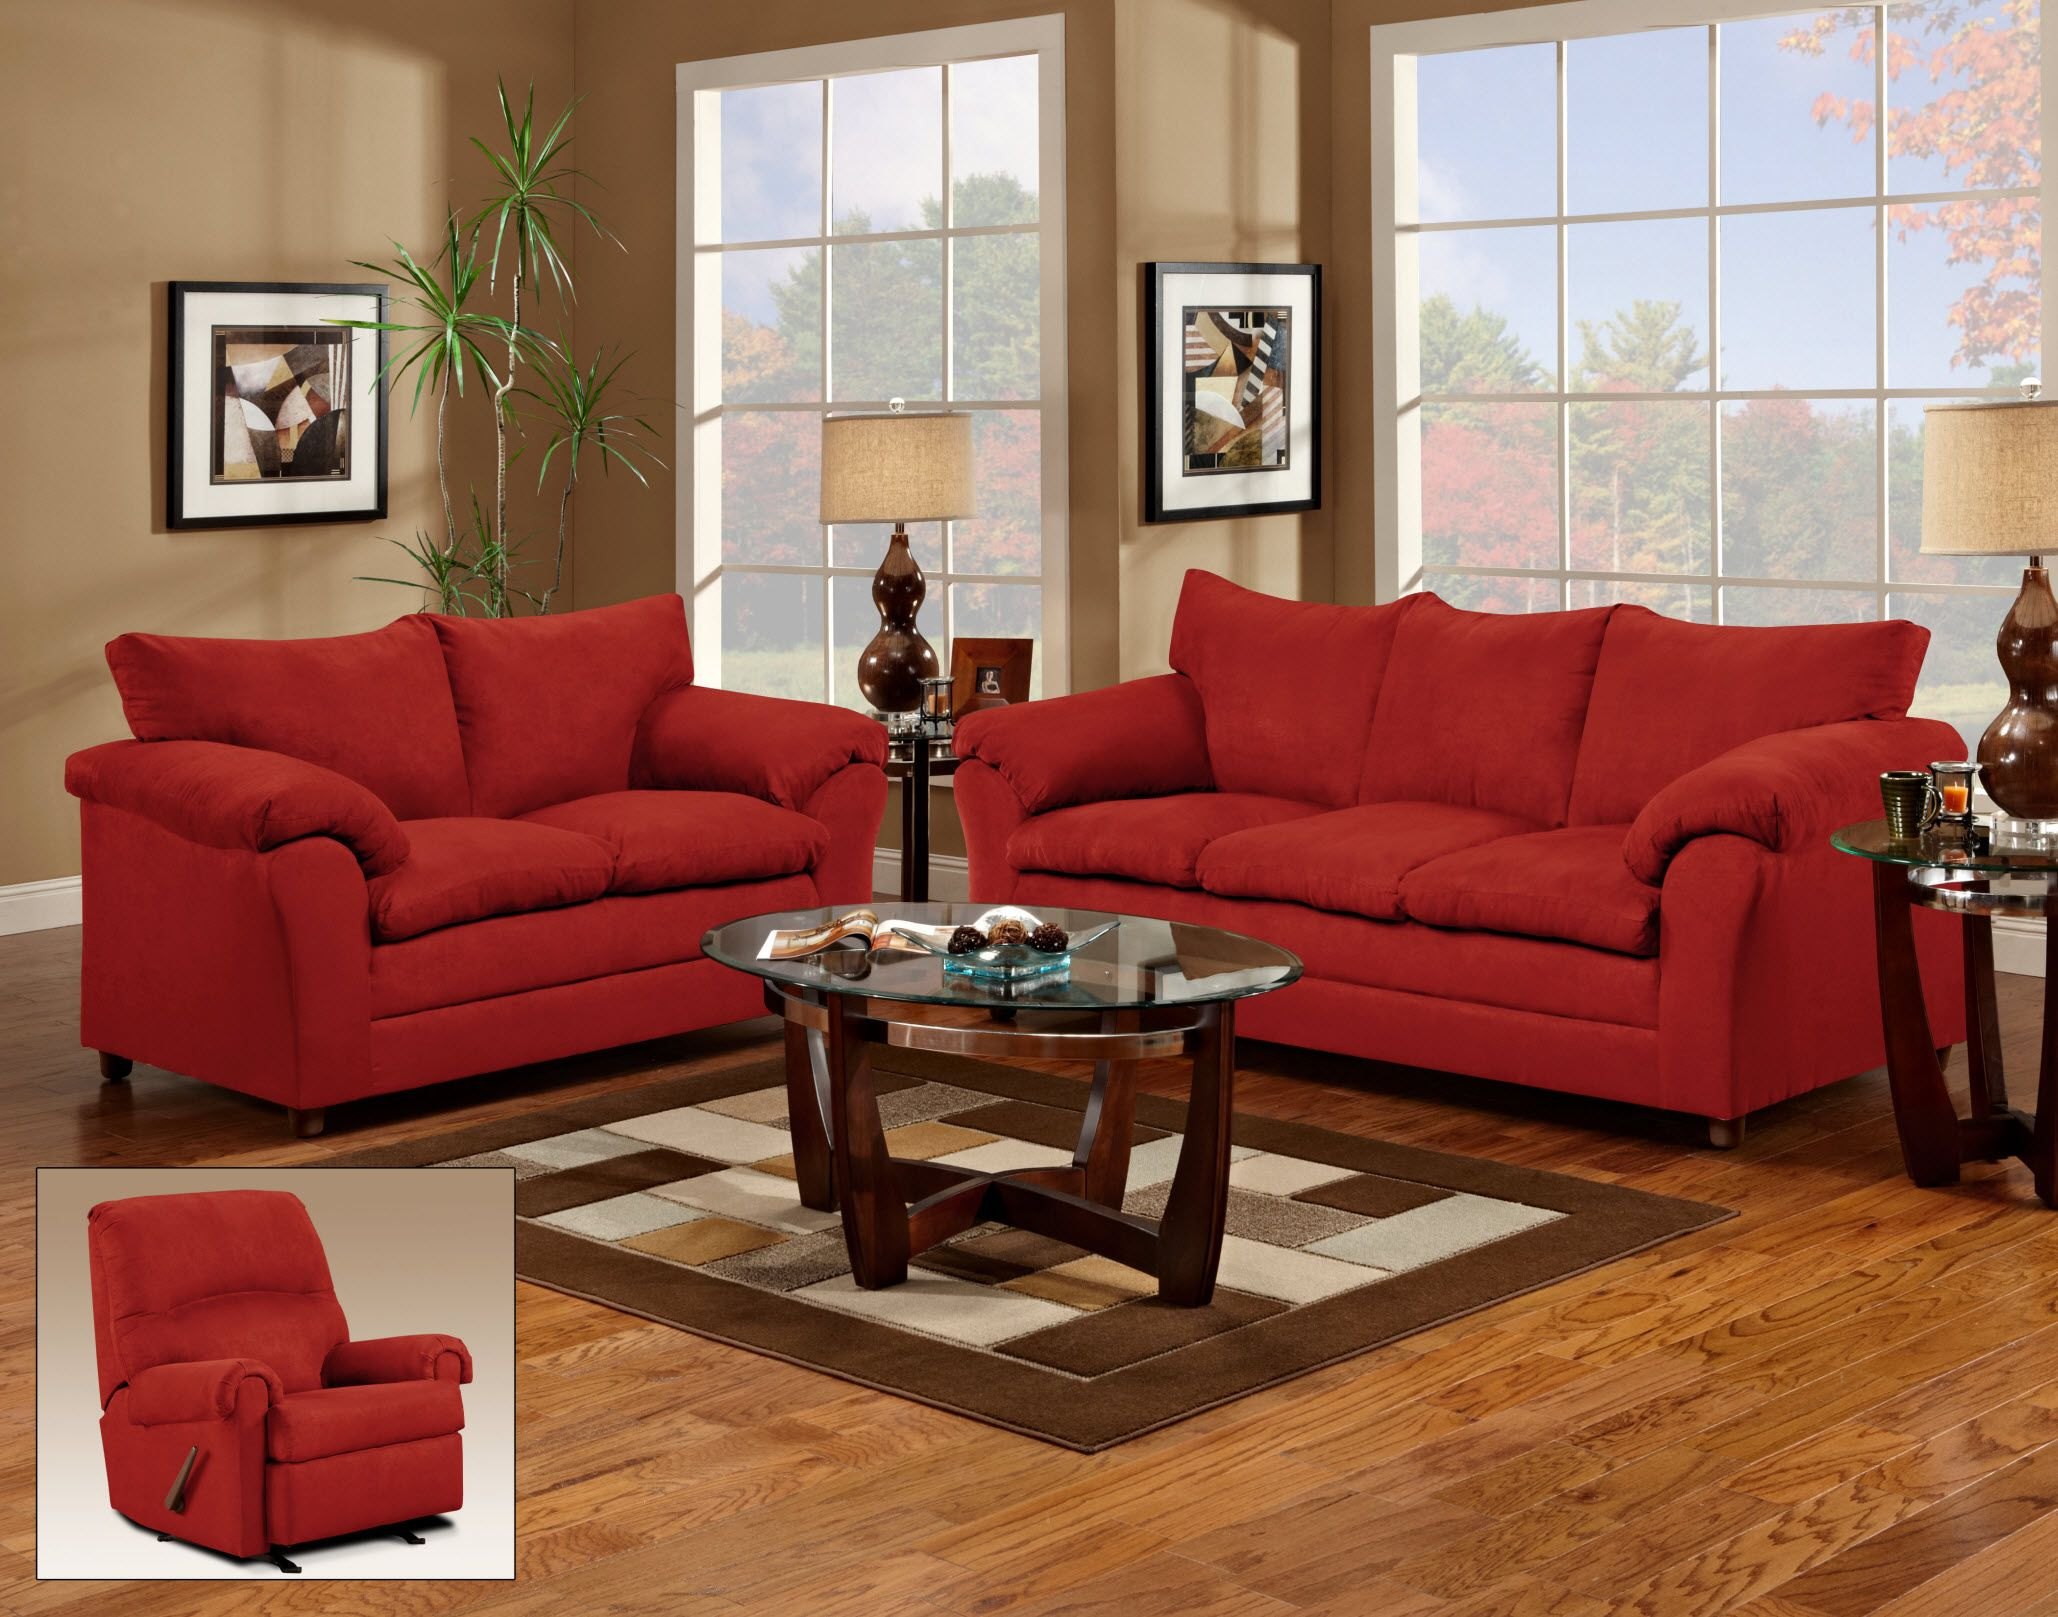 Living Room With Red Furniture Red Couch And Loveseat Living Room For The Home Pinterest